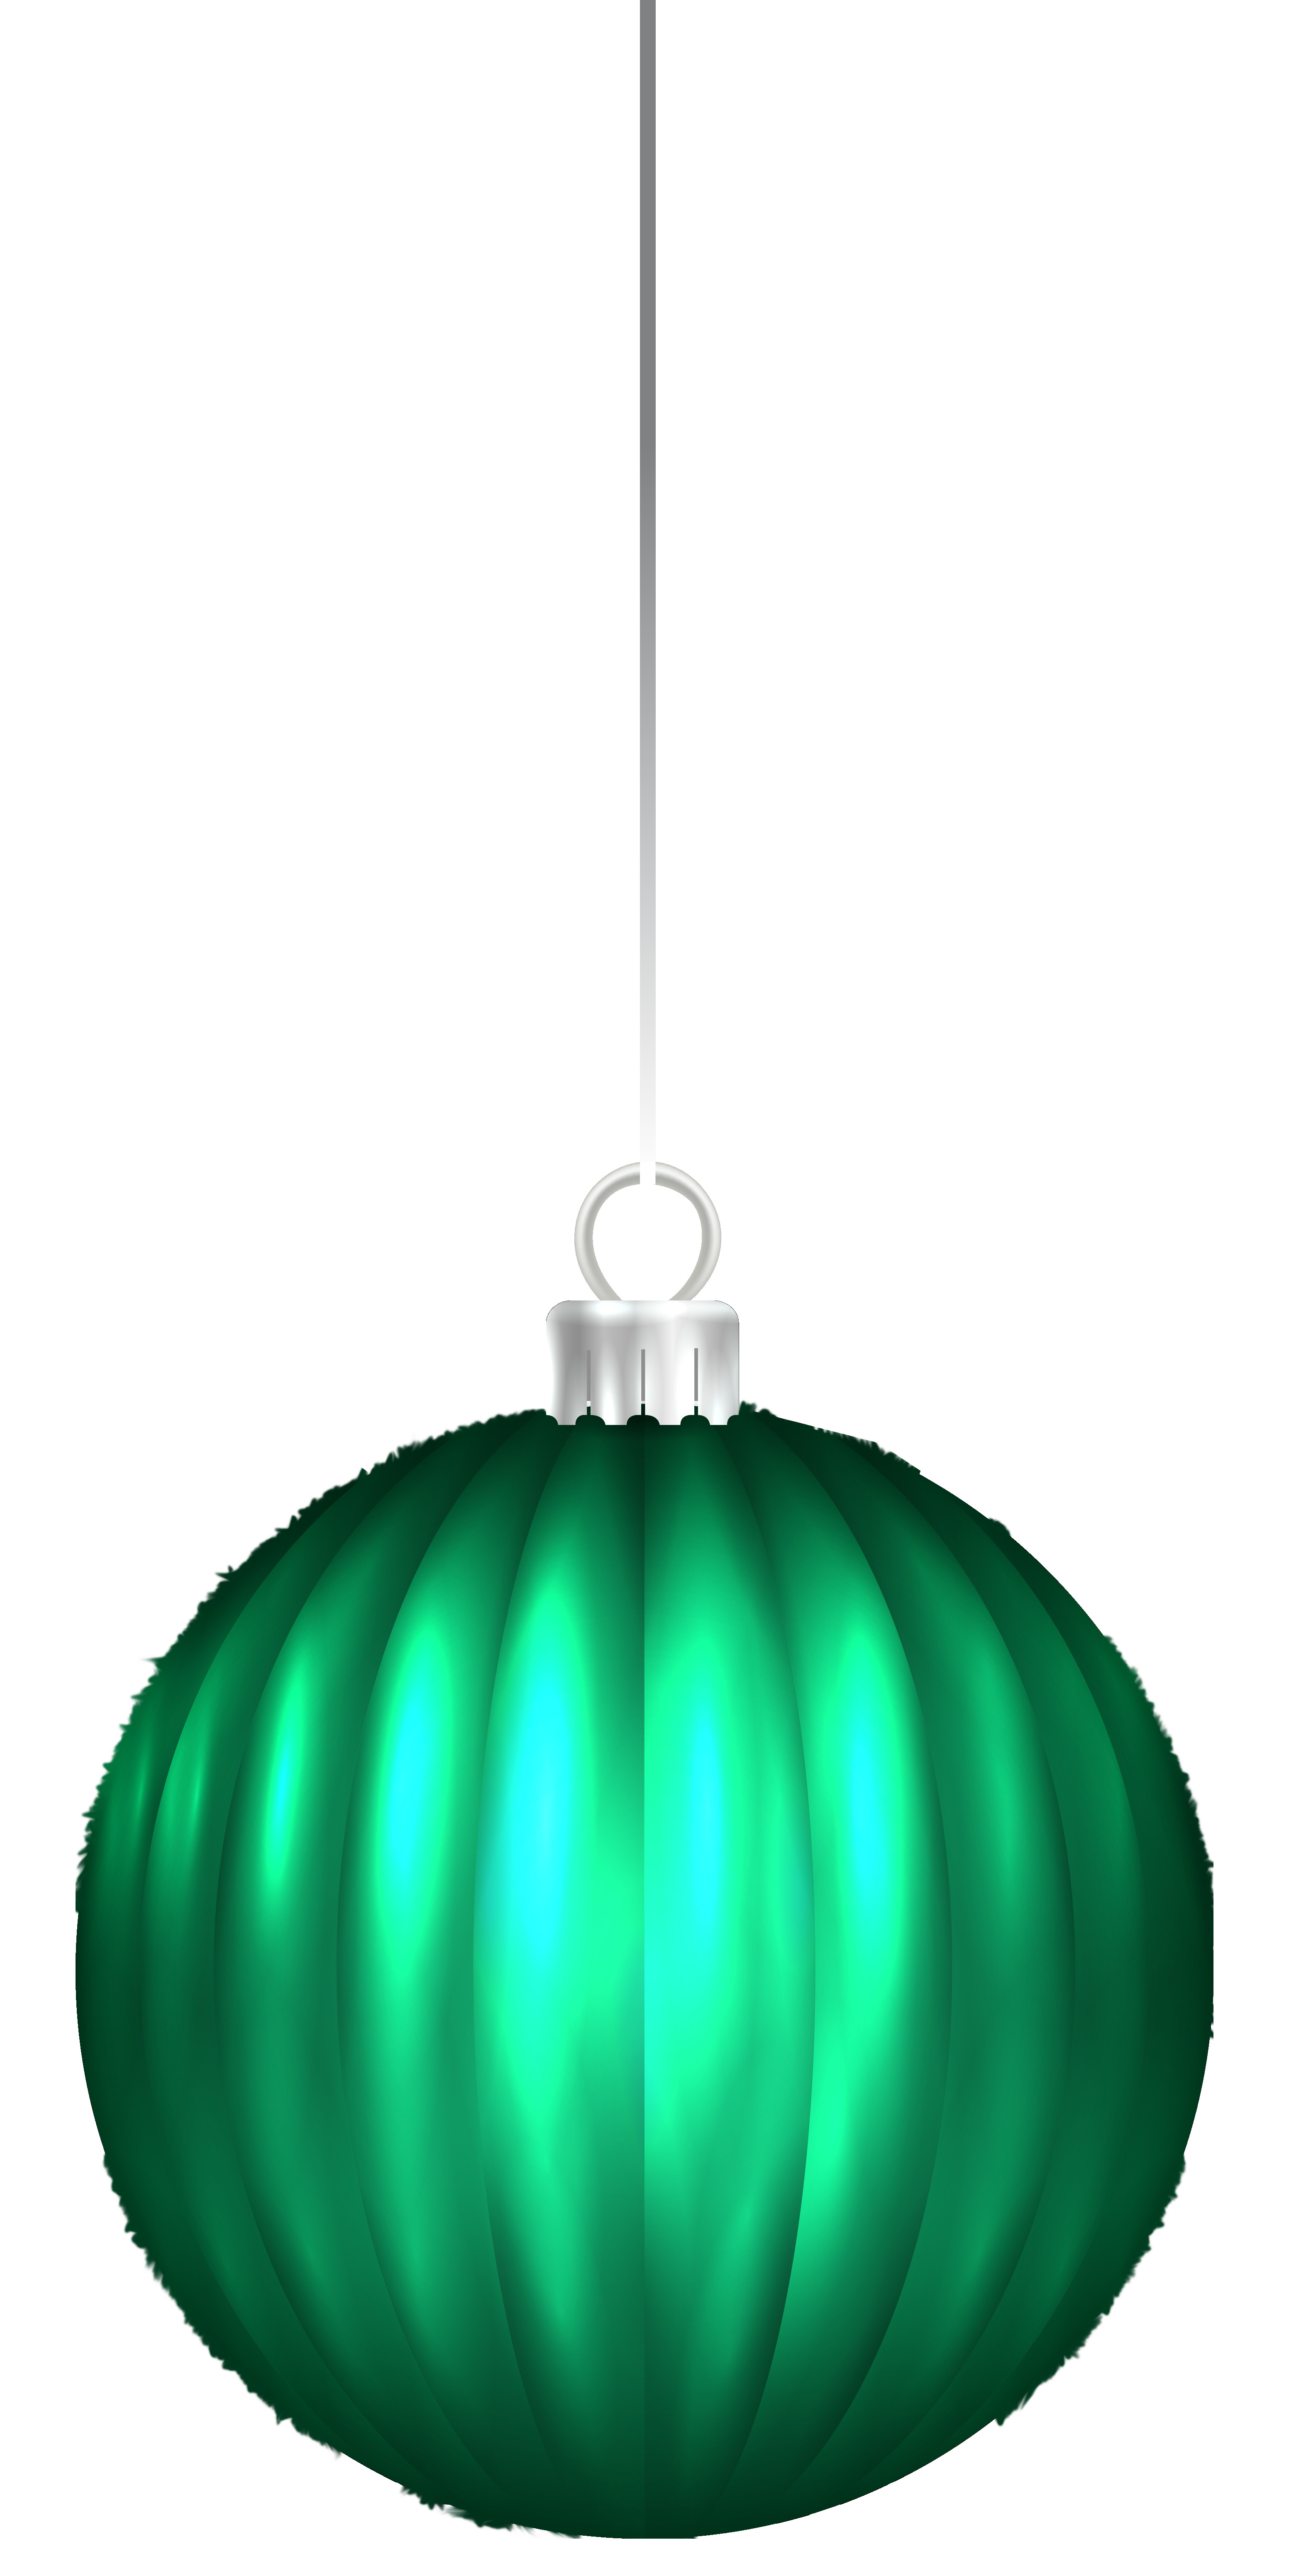 Christmas ornaments Inspirational Green Christmas ornament Clipart – Happy Holidays Of Incredible 48 Images Christmas ornaments